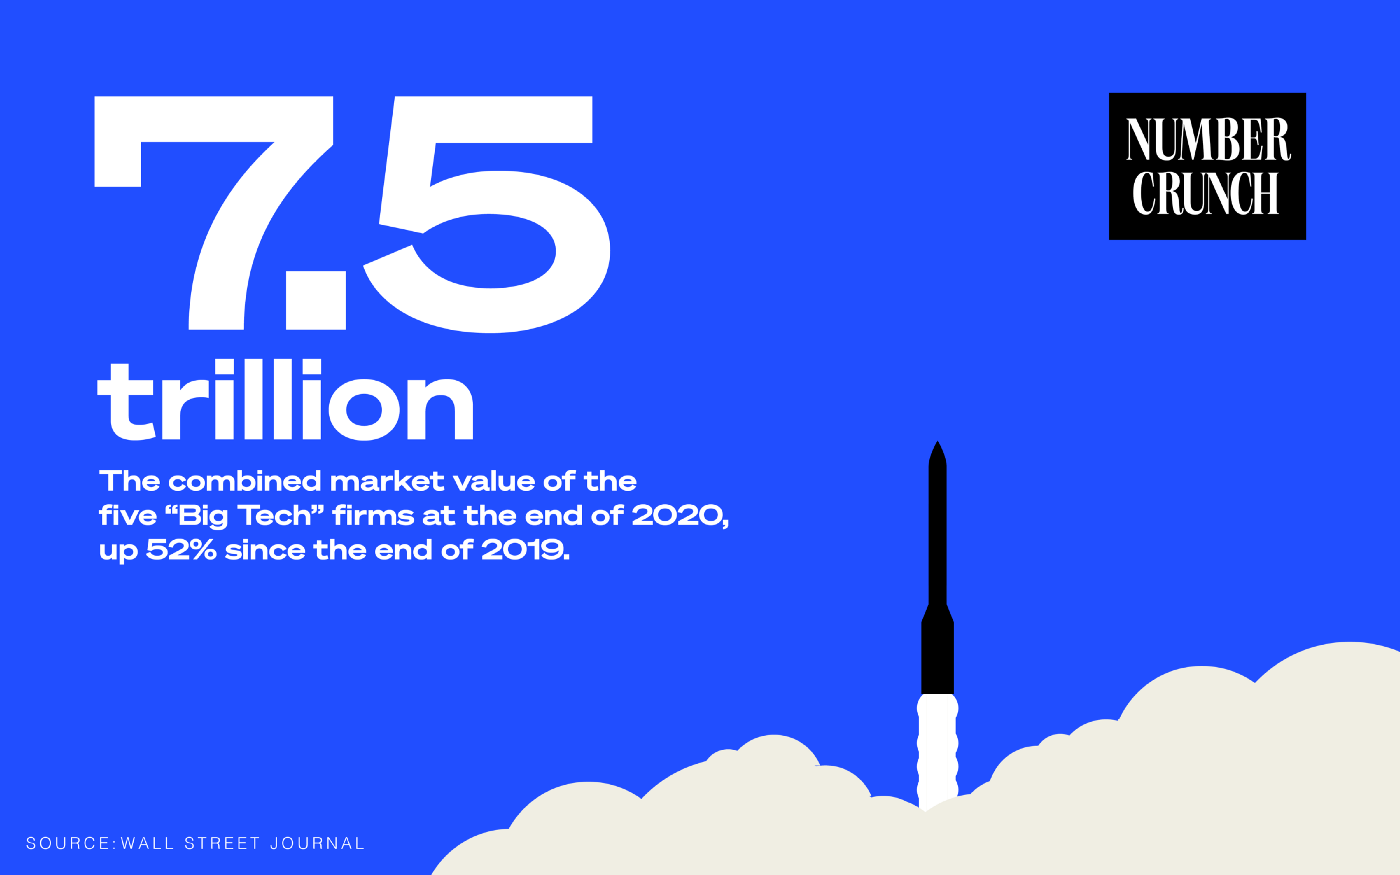 "The ""Number Crunch"" logo next to the text ""$7.5 trillion: The combined market value of the five Big Tech firms at the end of 2020, up 52% since the end of 2019. Source: Wall Street Journal"" with a rocket ship illustrated taking off against a blue background."